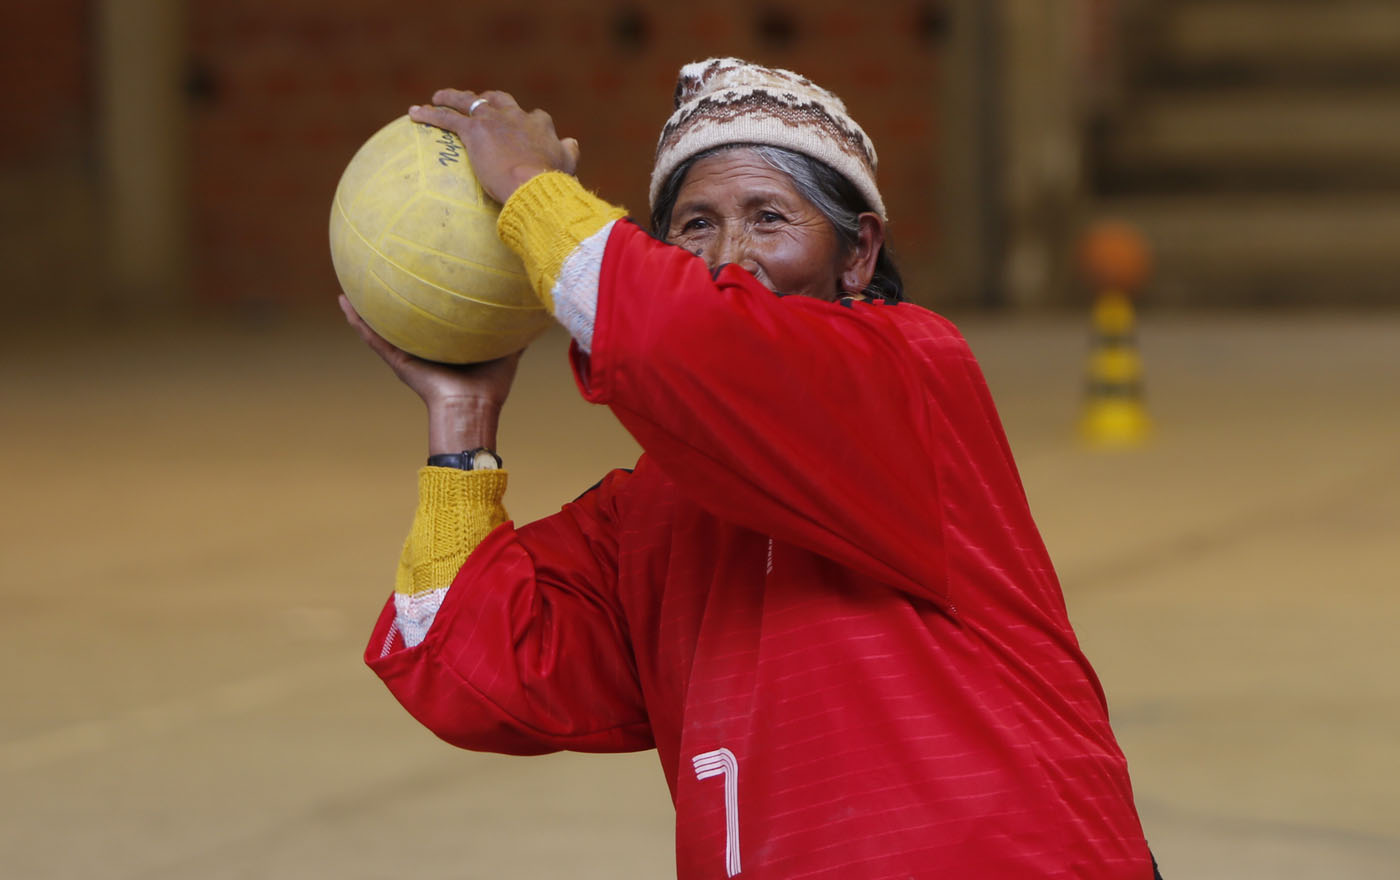 Bolivian grandmothers – and great-grandmothers – stay fit with handball